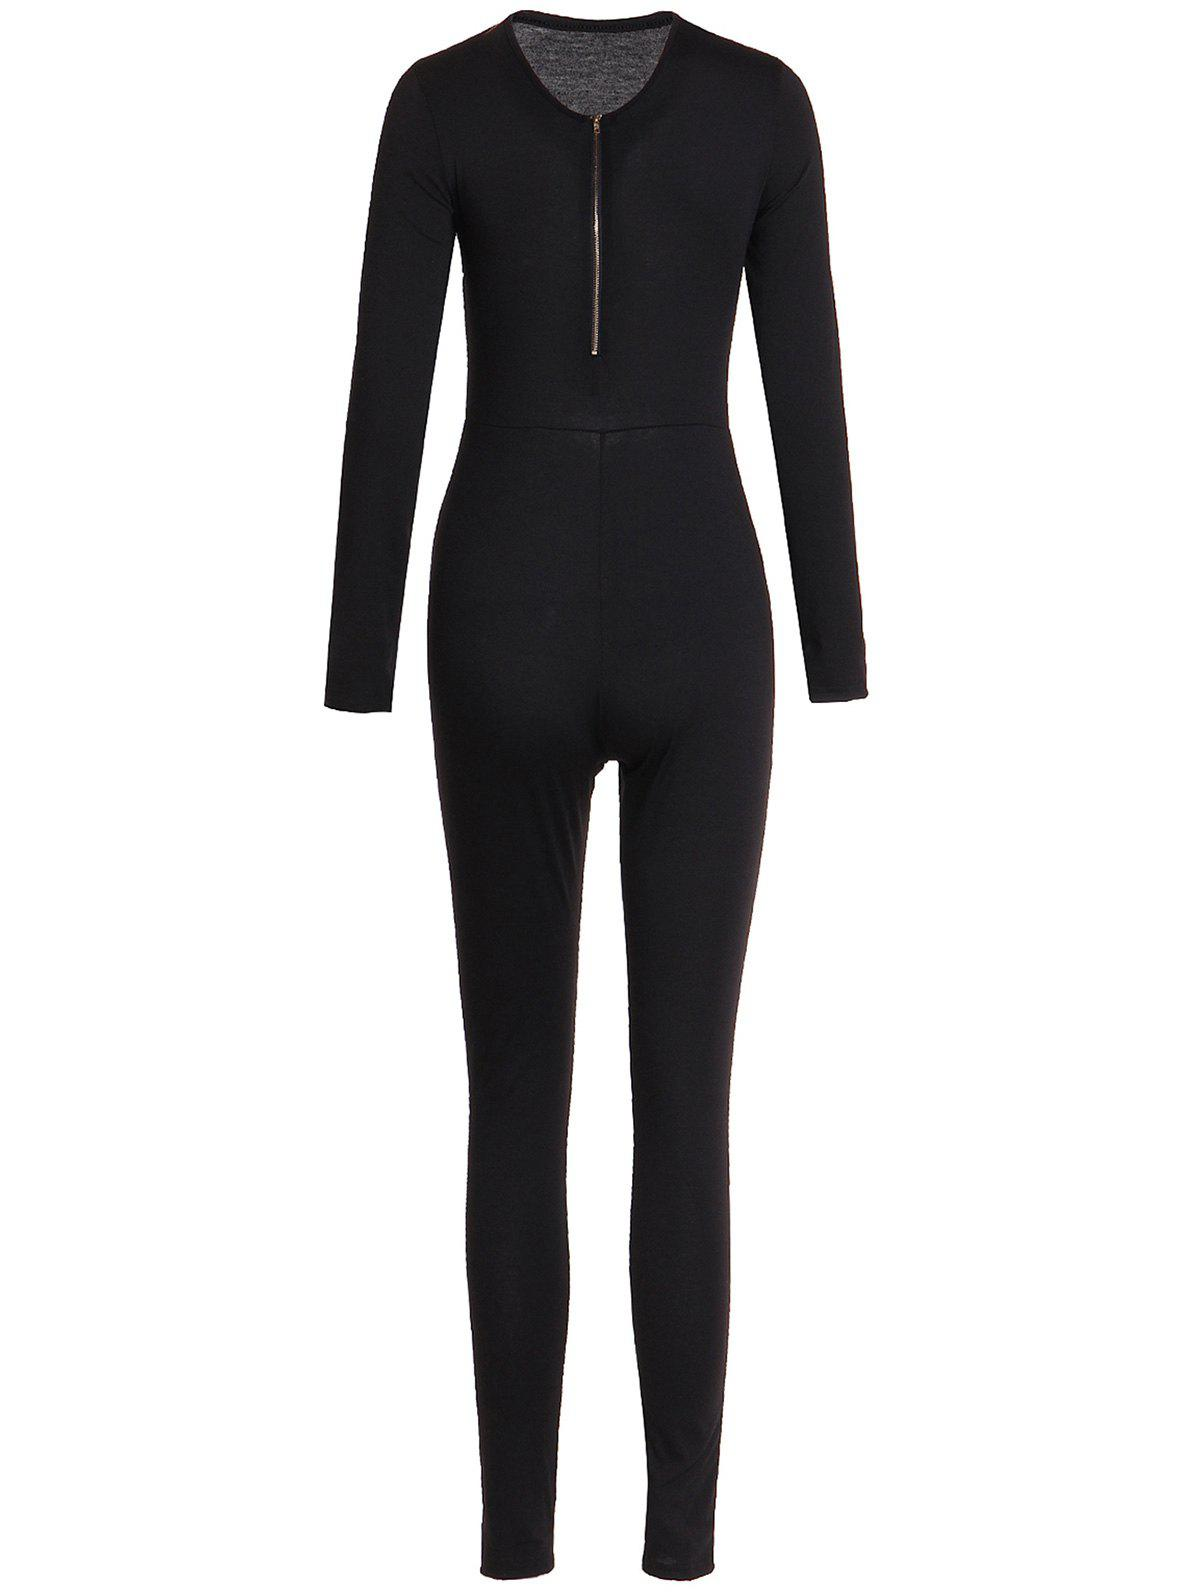 Solid Color Zippered V-Neck Long Sleeve Bodycon Jumpsuit For Women - XL BLACK